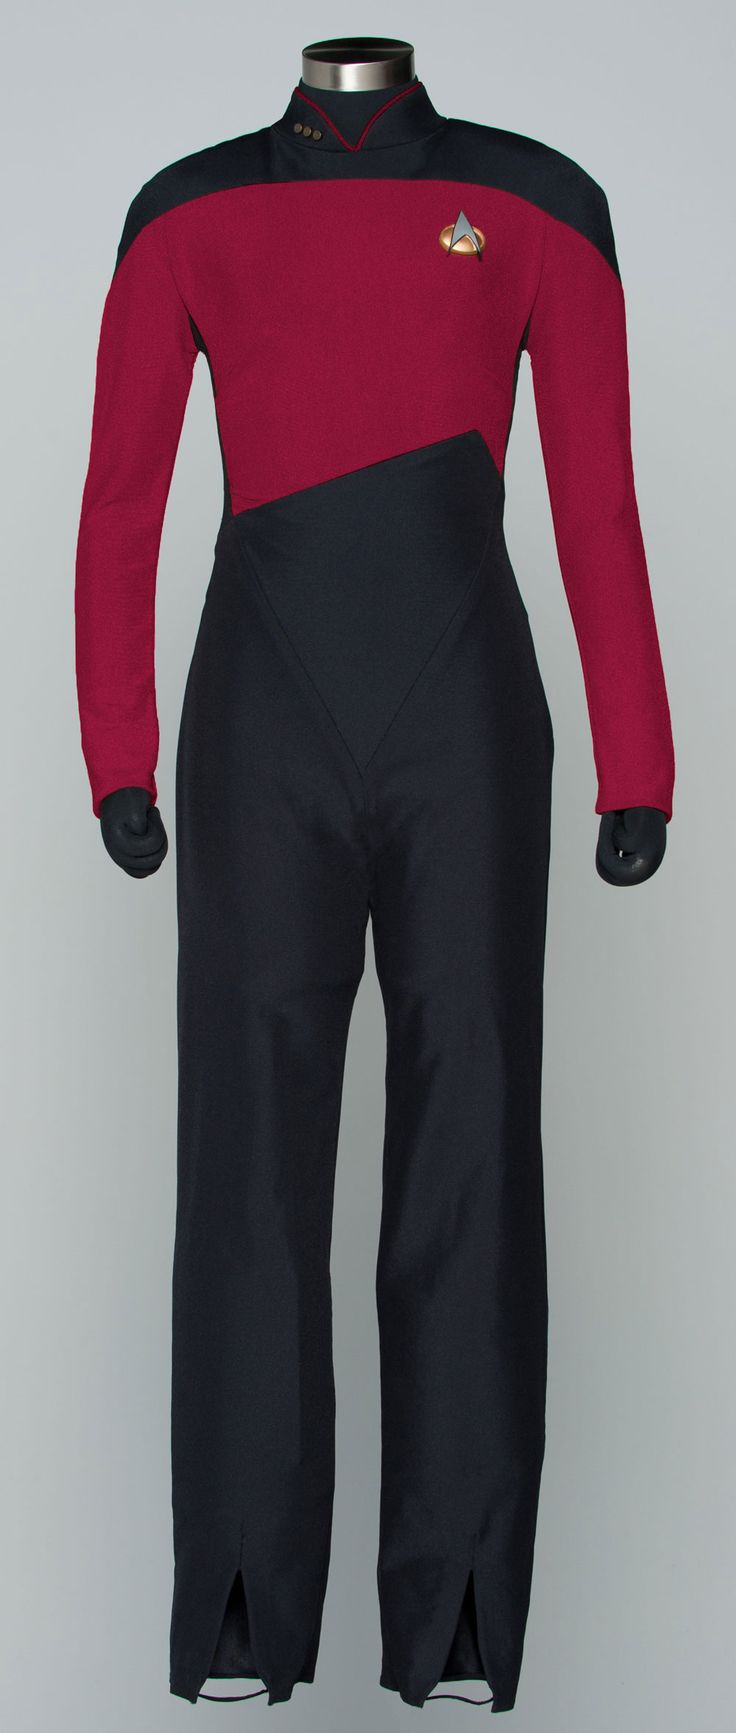 FIRST LOOK: Star Trek: The Next Generation Premier Line Women's Jumpsuit From Anovos